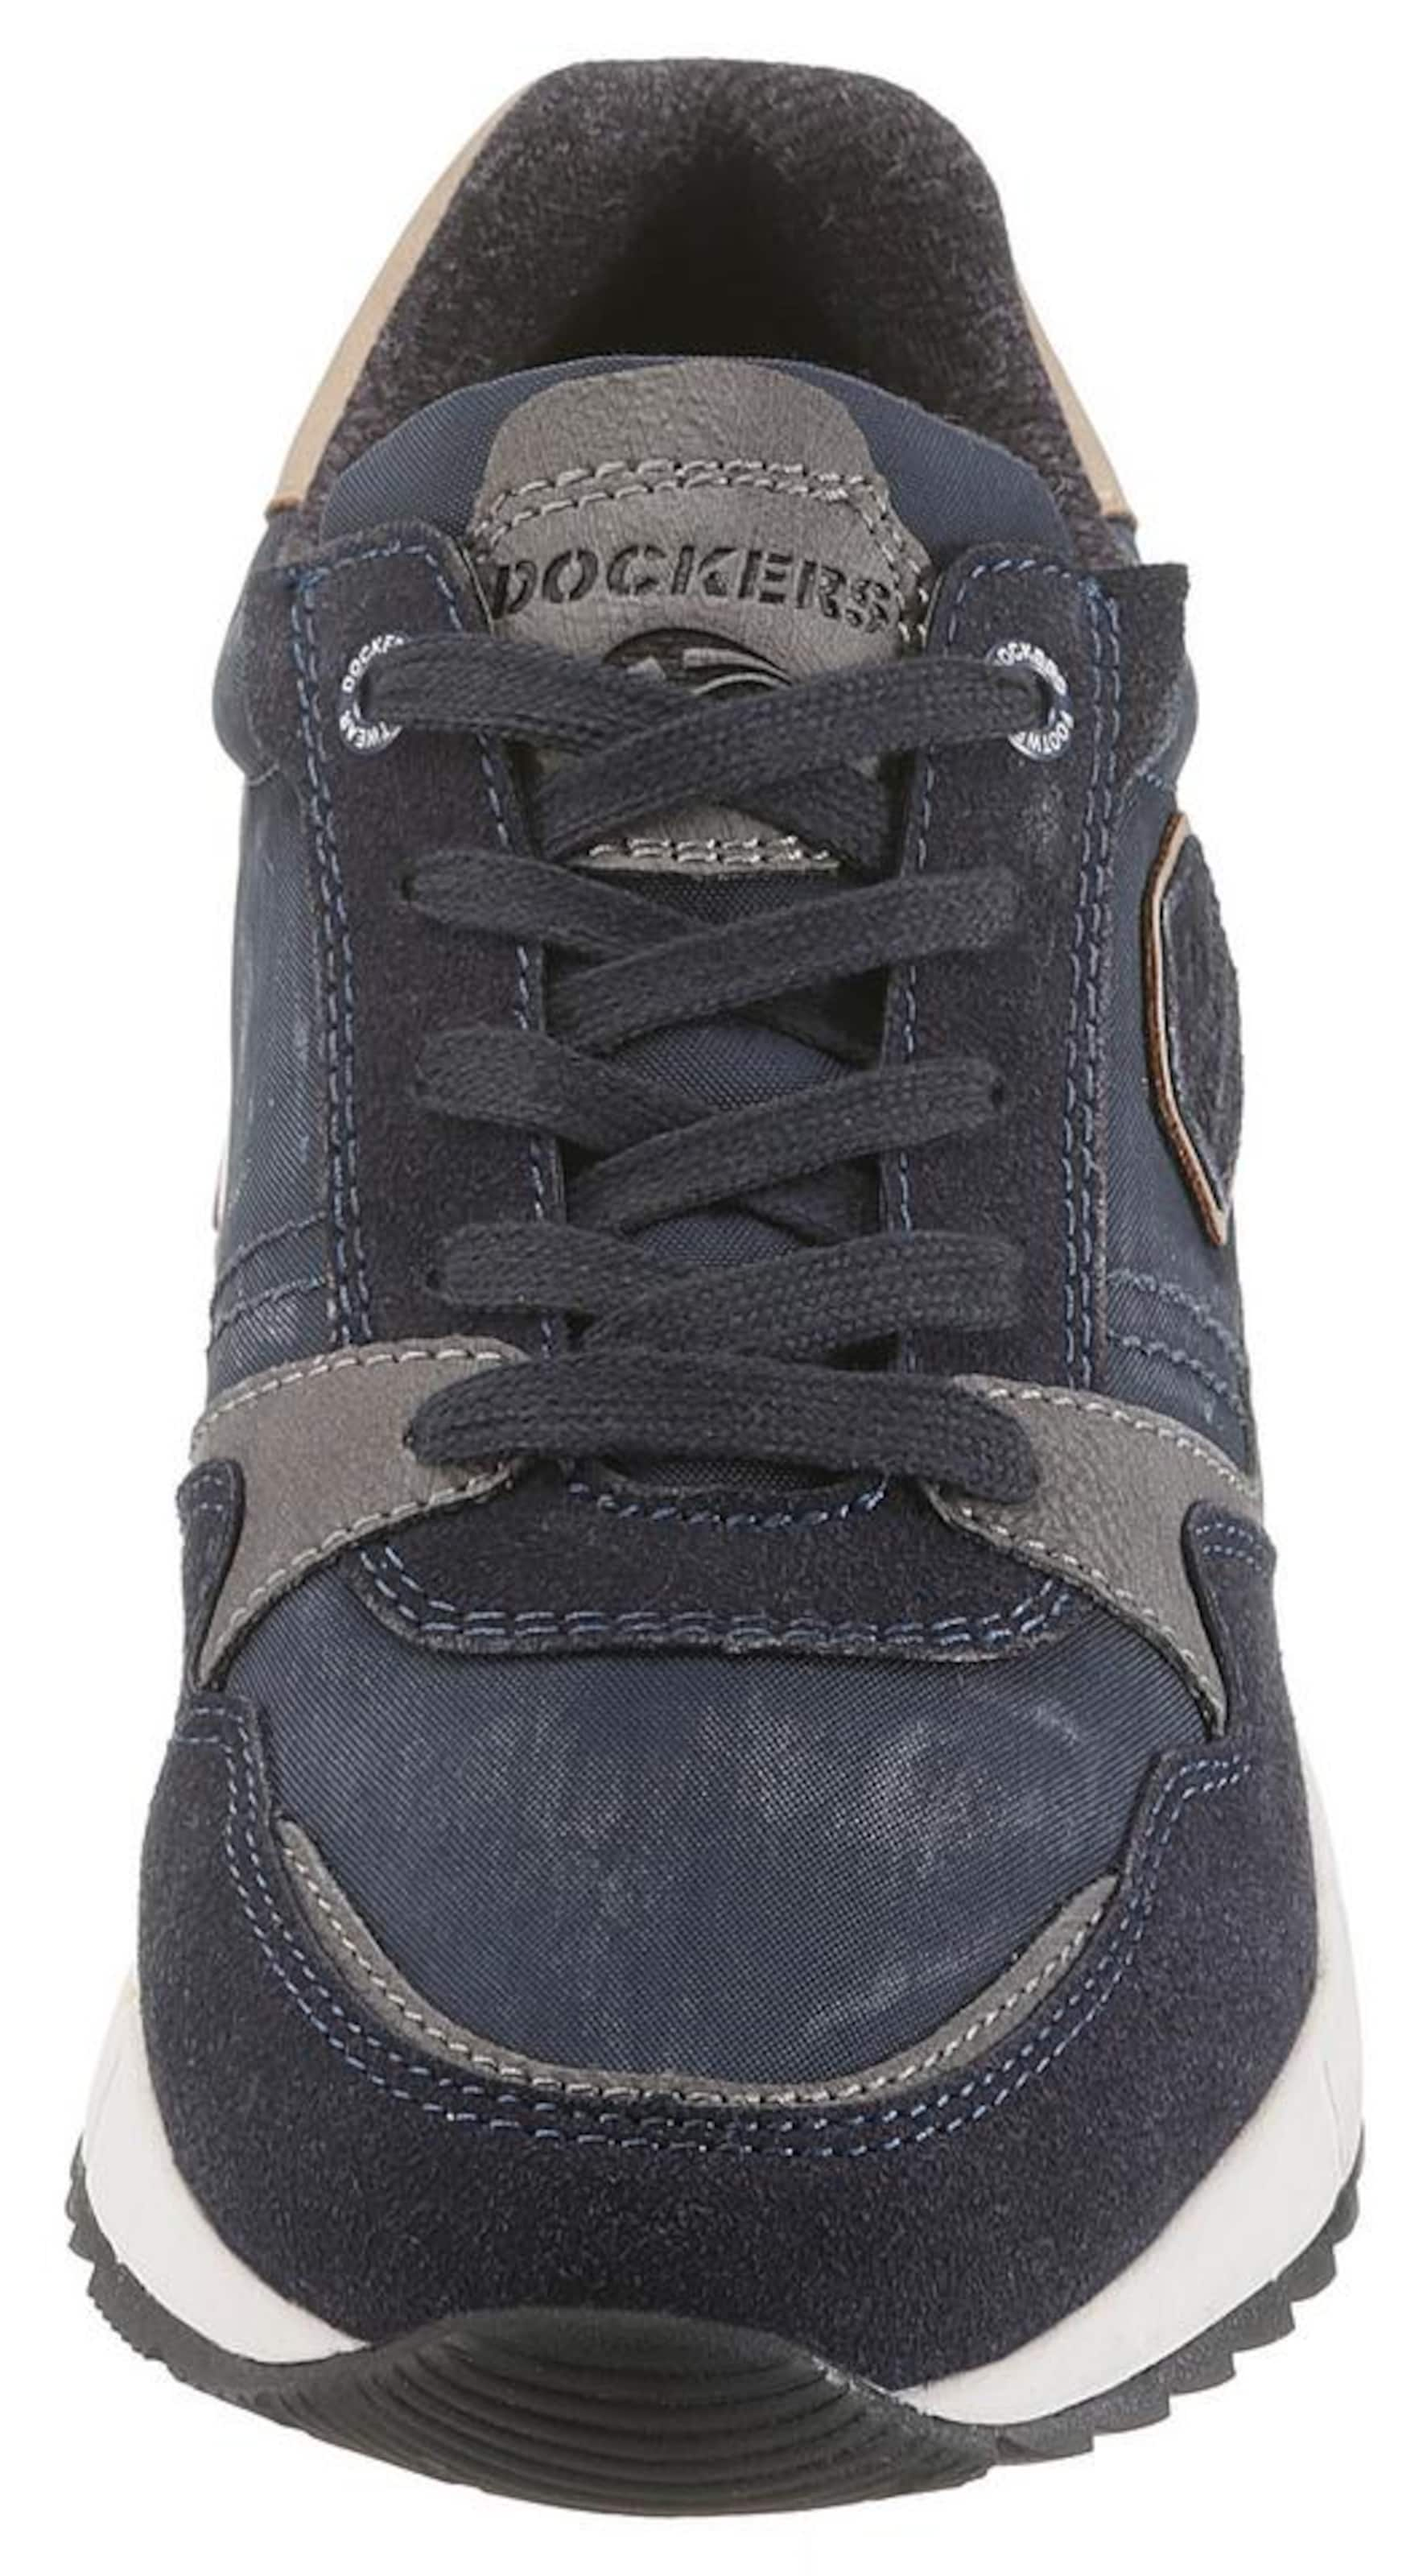 Taupe Gerli Dockers By CamelNavy Sneaker In QrdWCxBoe